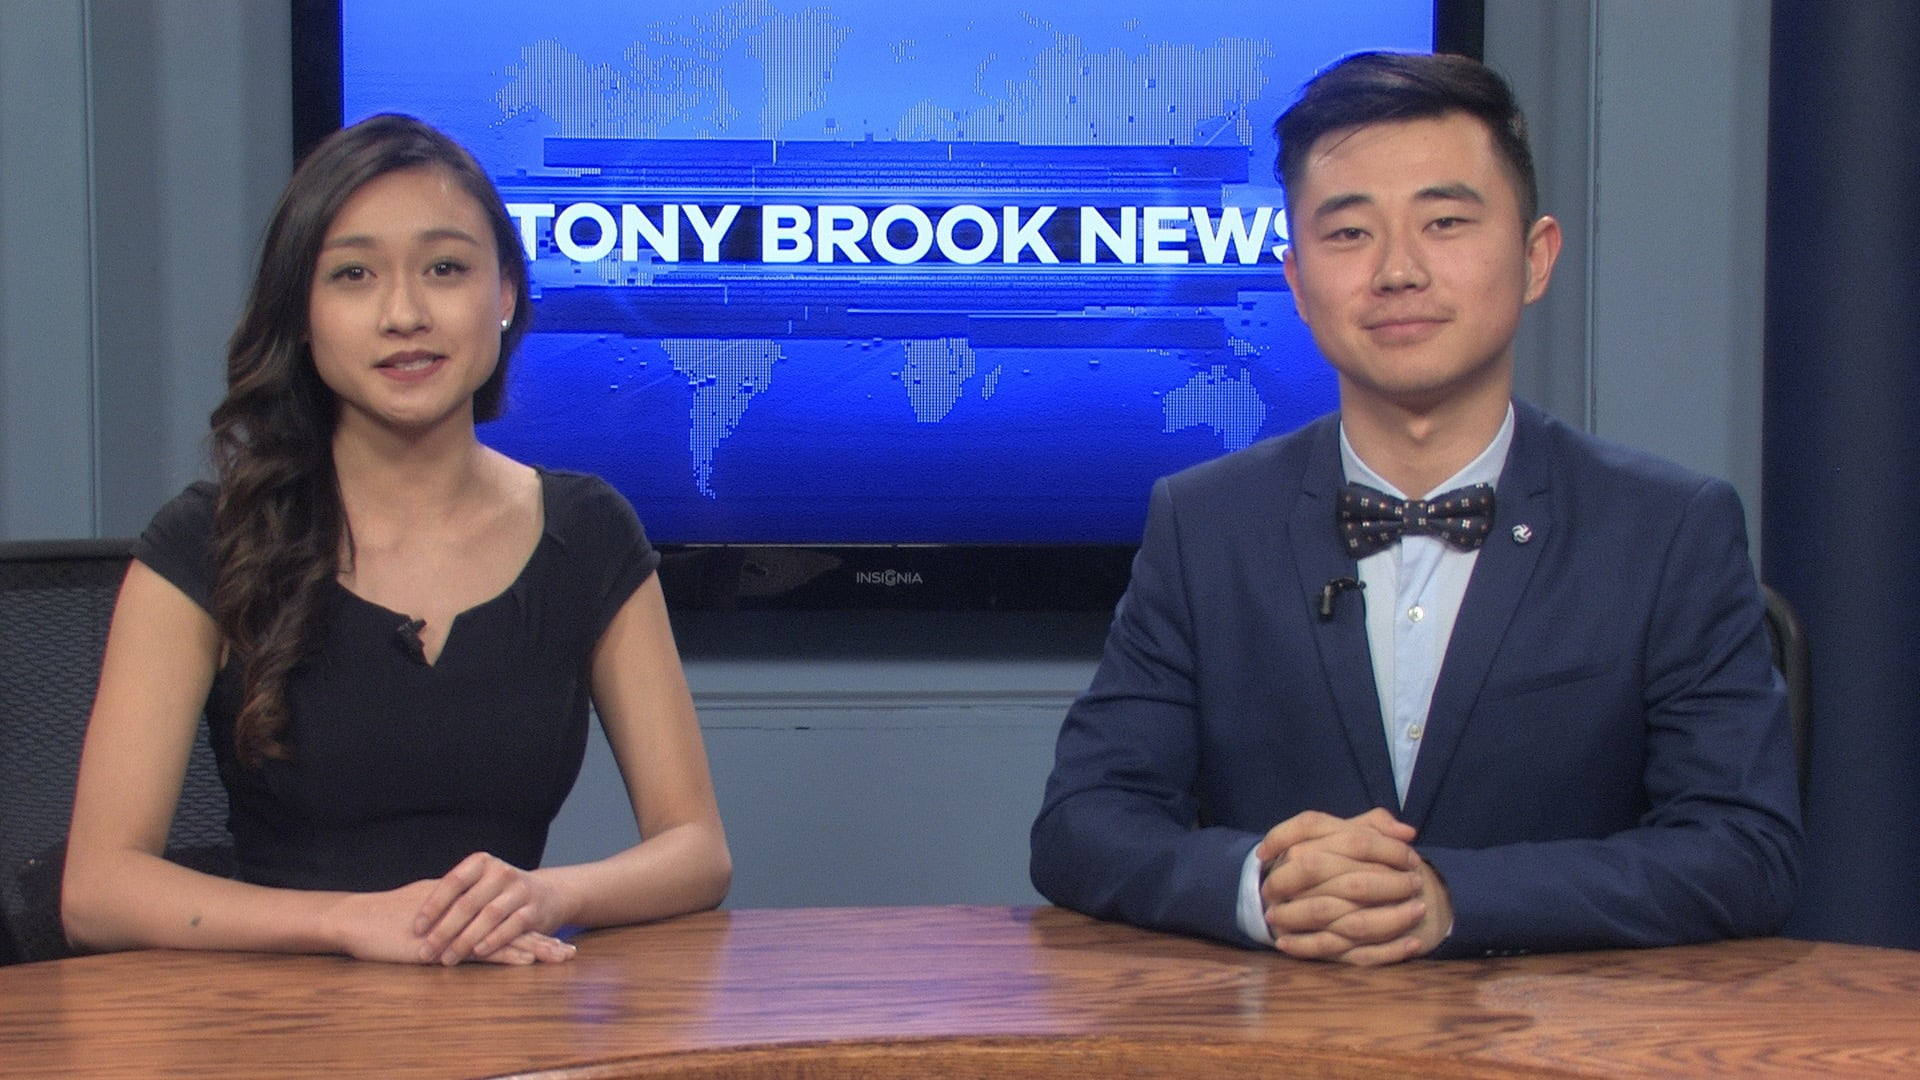 Stony Brook News – March 26, 2018